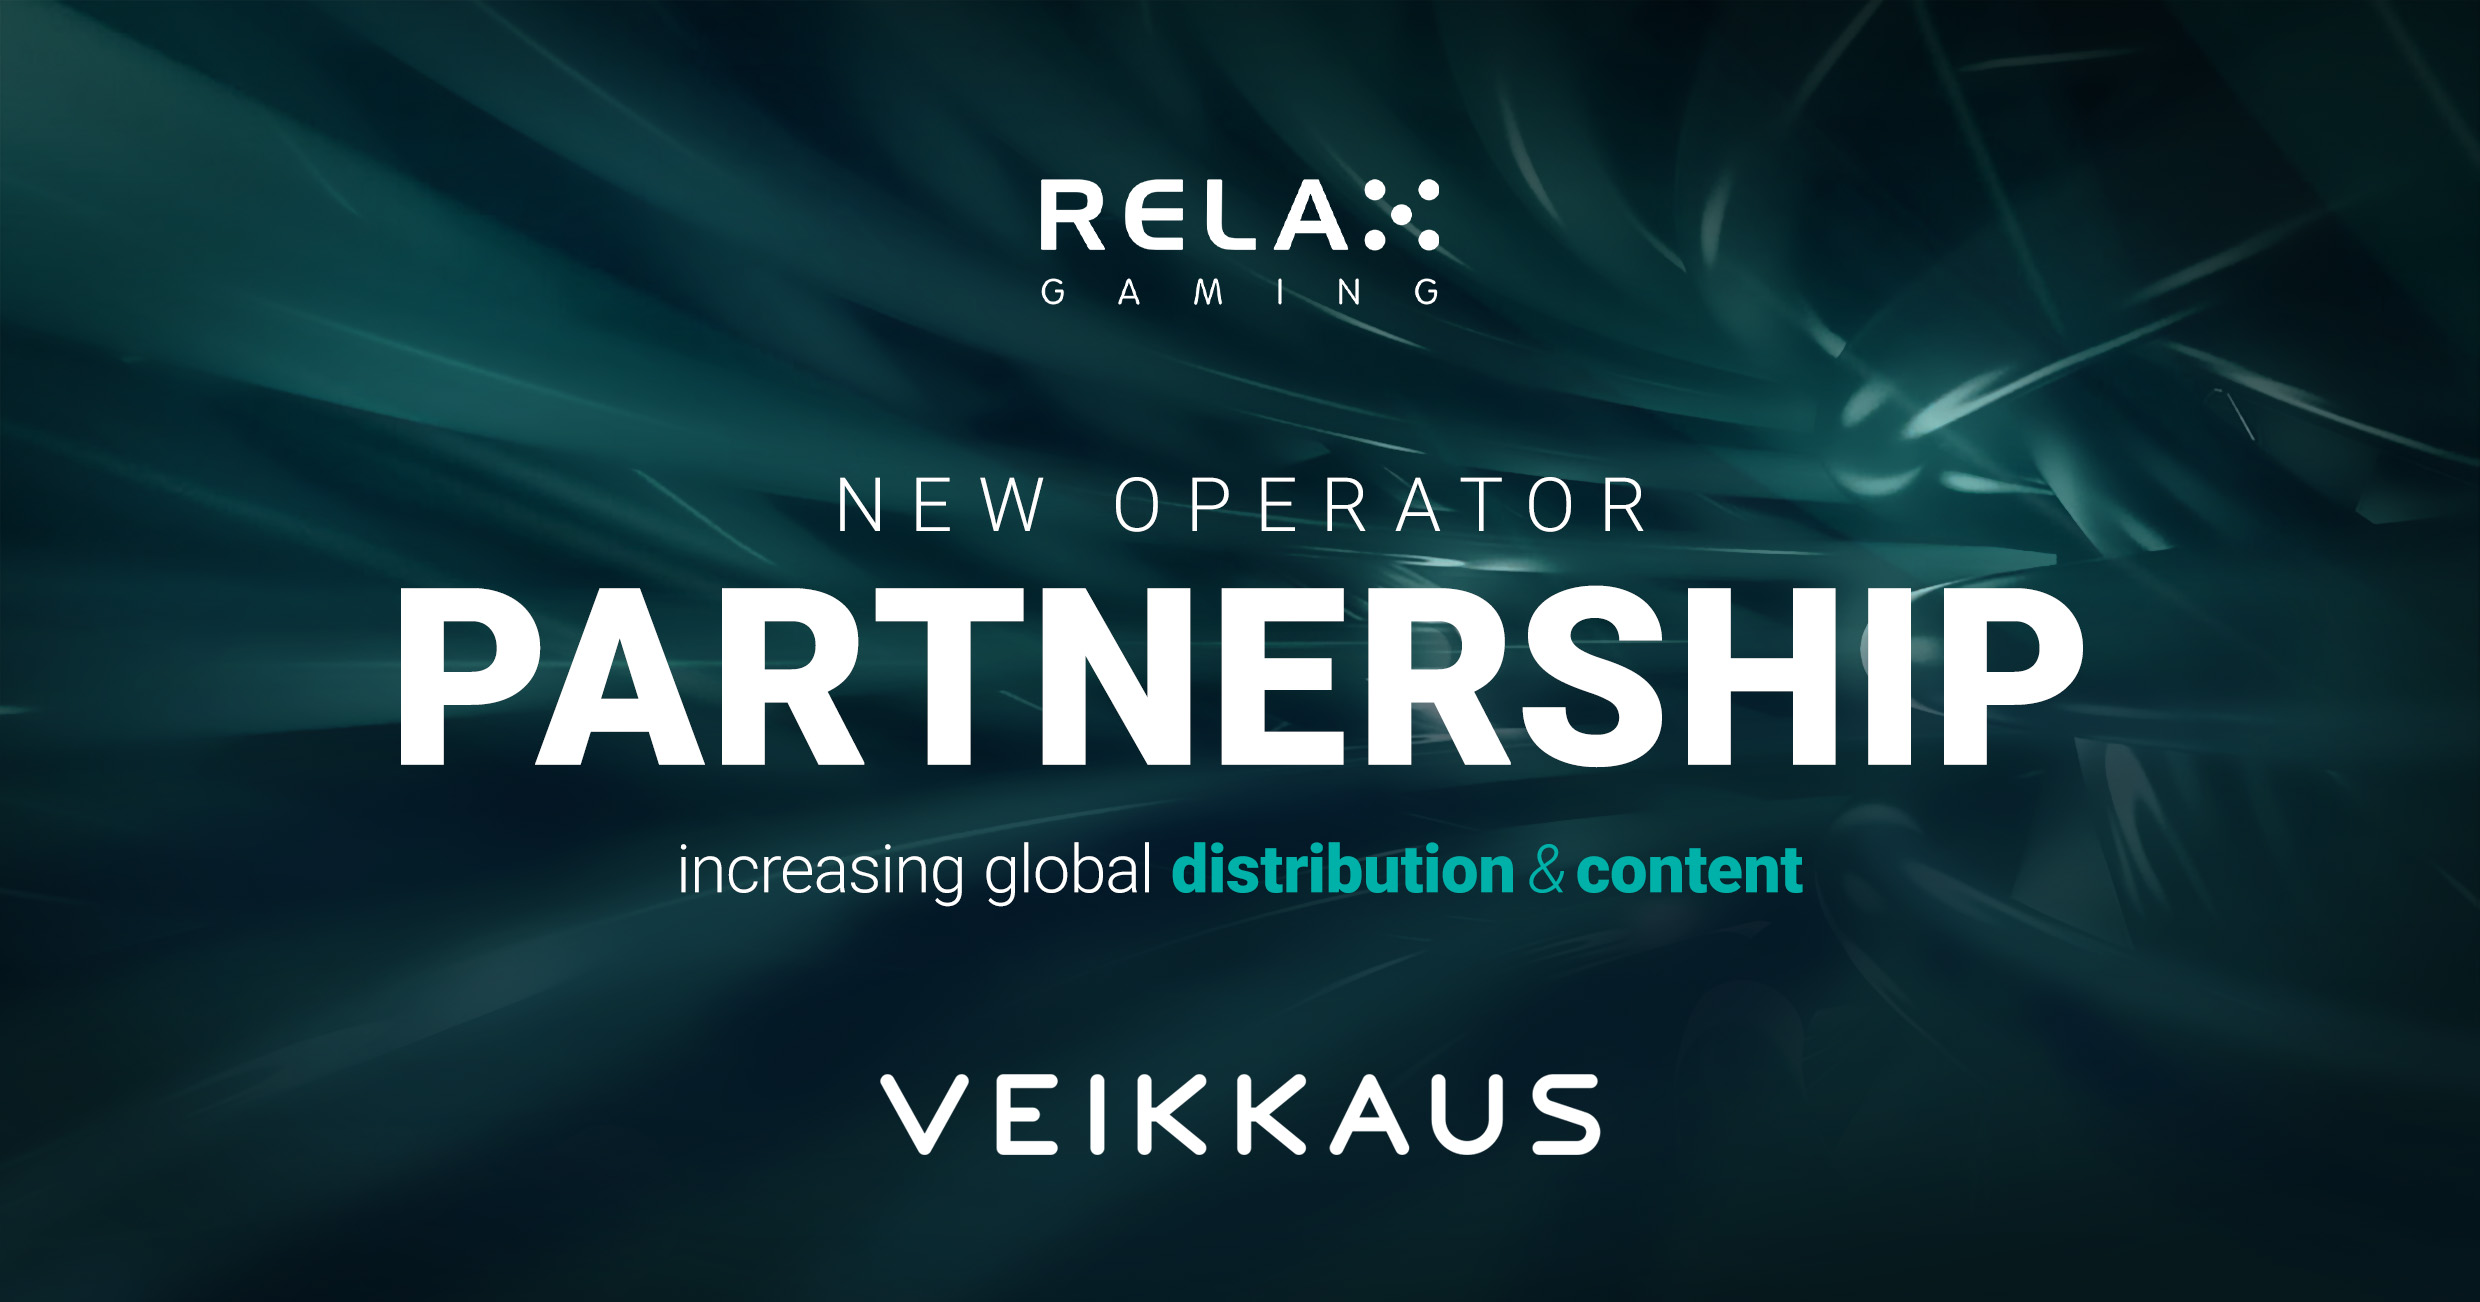 Relax Gaming secures landmark partnership with Veikkaus